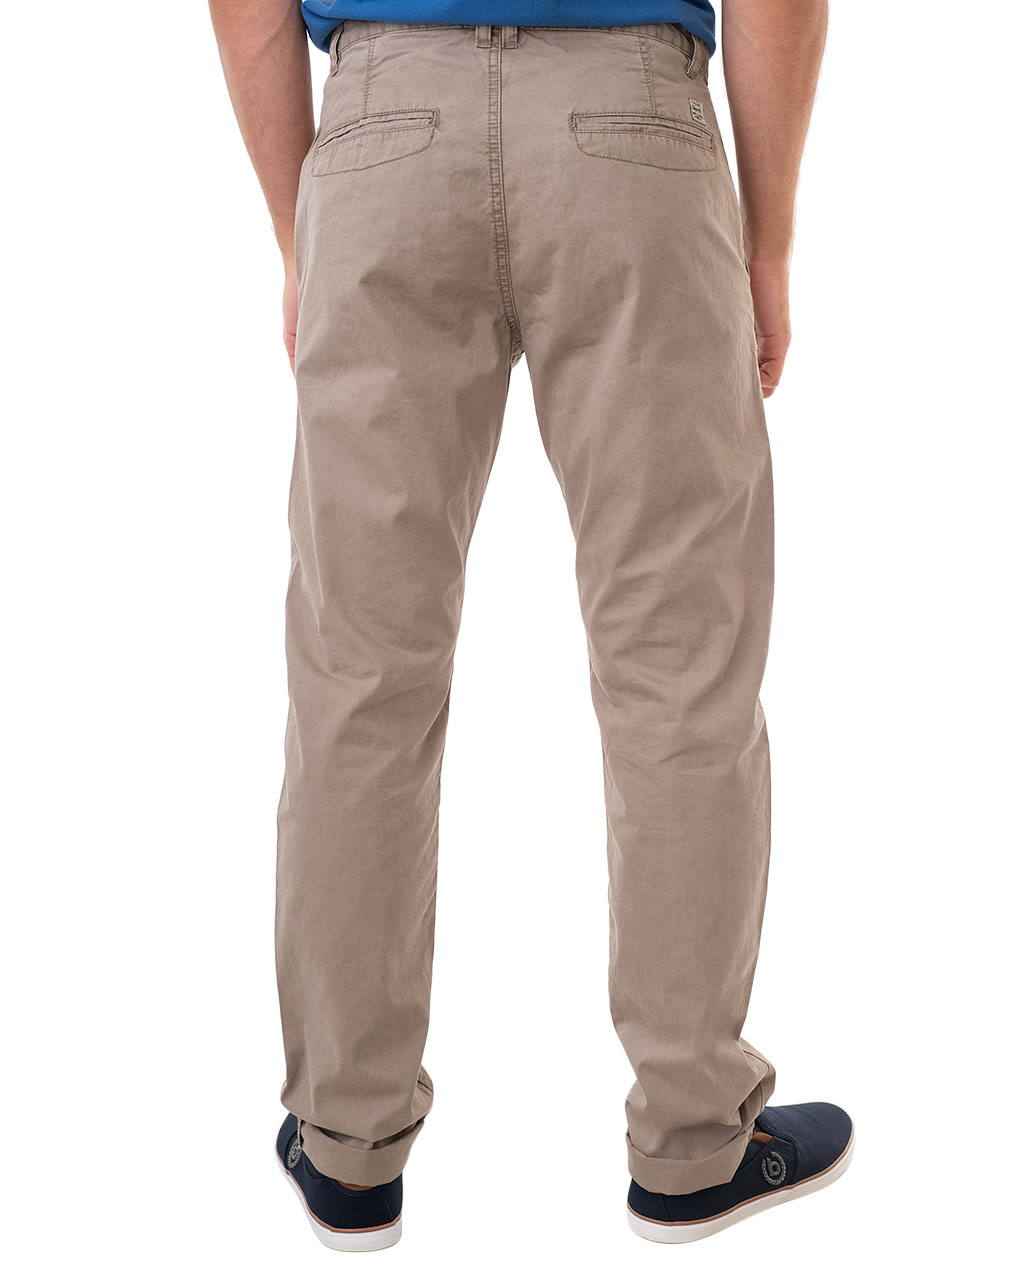 Men's trousers 123648/6                 (5)